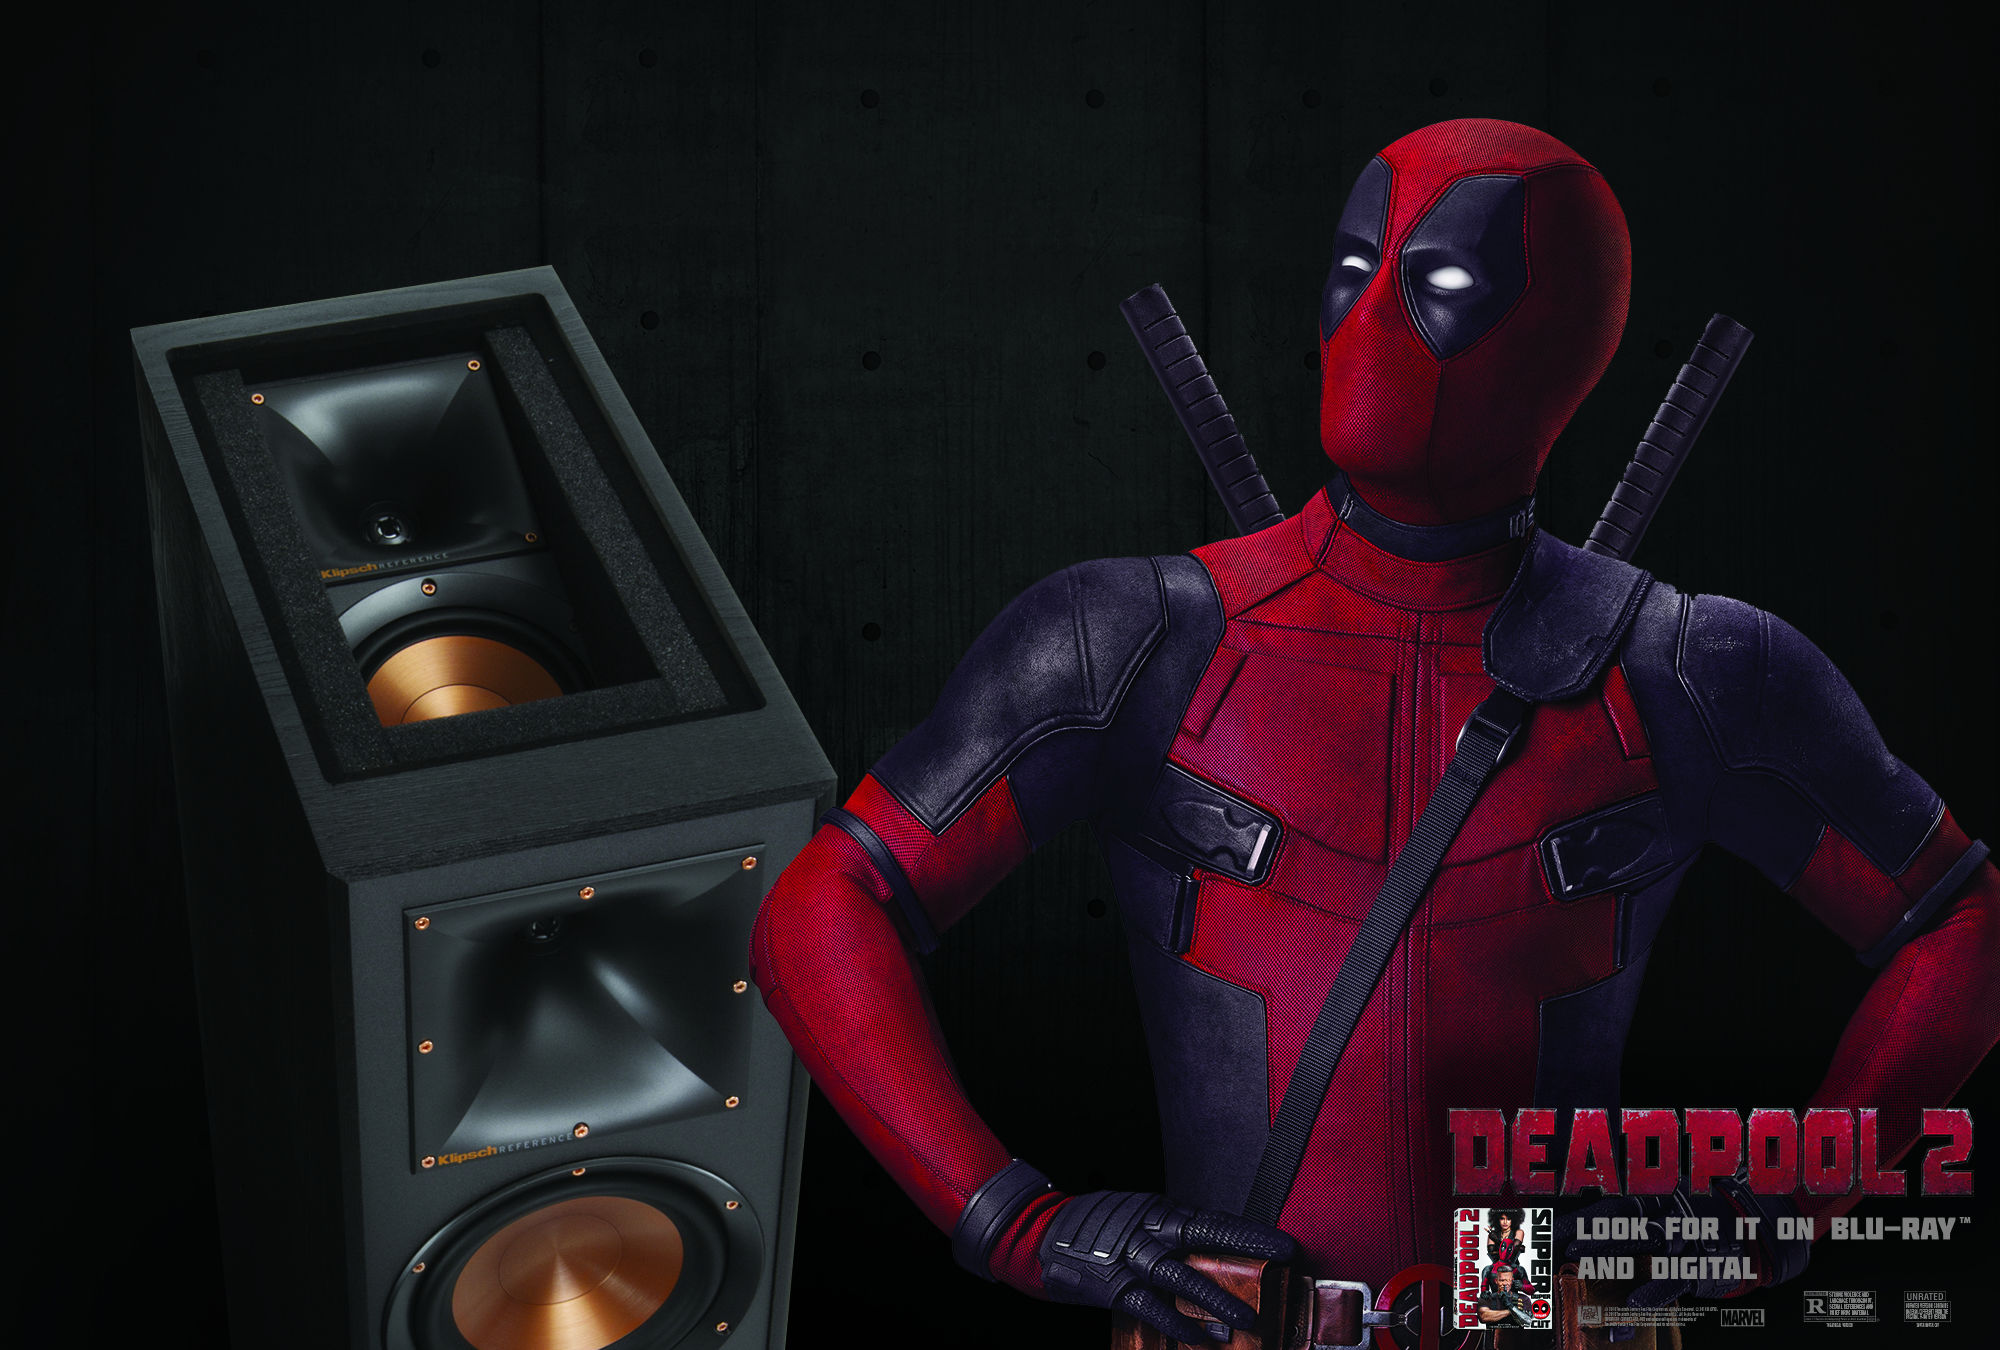 Deadpool 2 | Klipsch